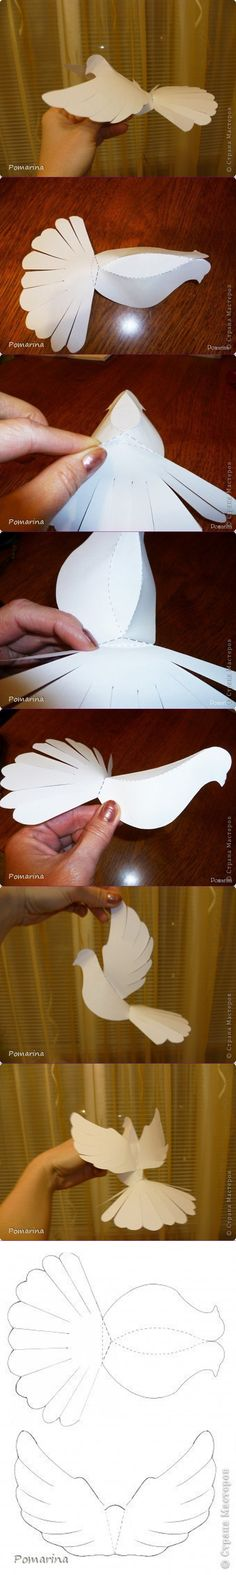 Here is a tutorial for making your own DIY flying dove. You only need some paper and scissors. Templates of the bird parts are given above. Simply cut through the edges of the templates and attach … Origami Paper, Diy Paper, Paper Art, Paper Crafts, Kirigami, Diy And Crafts, Crafts For Kids, Arts And Crafts, Paper Birds